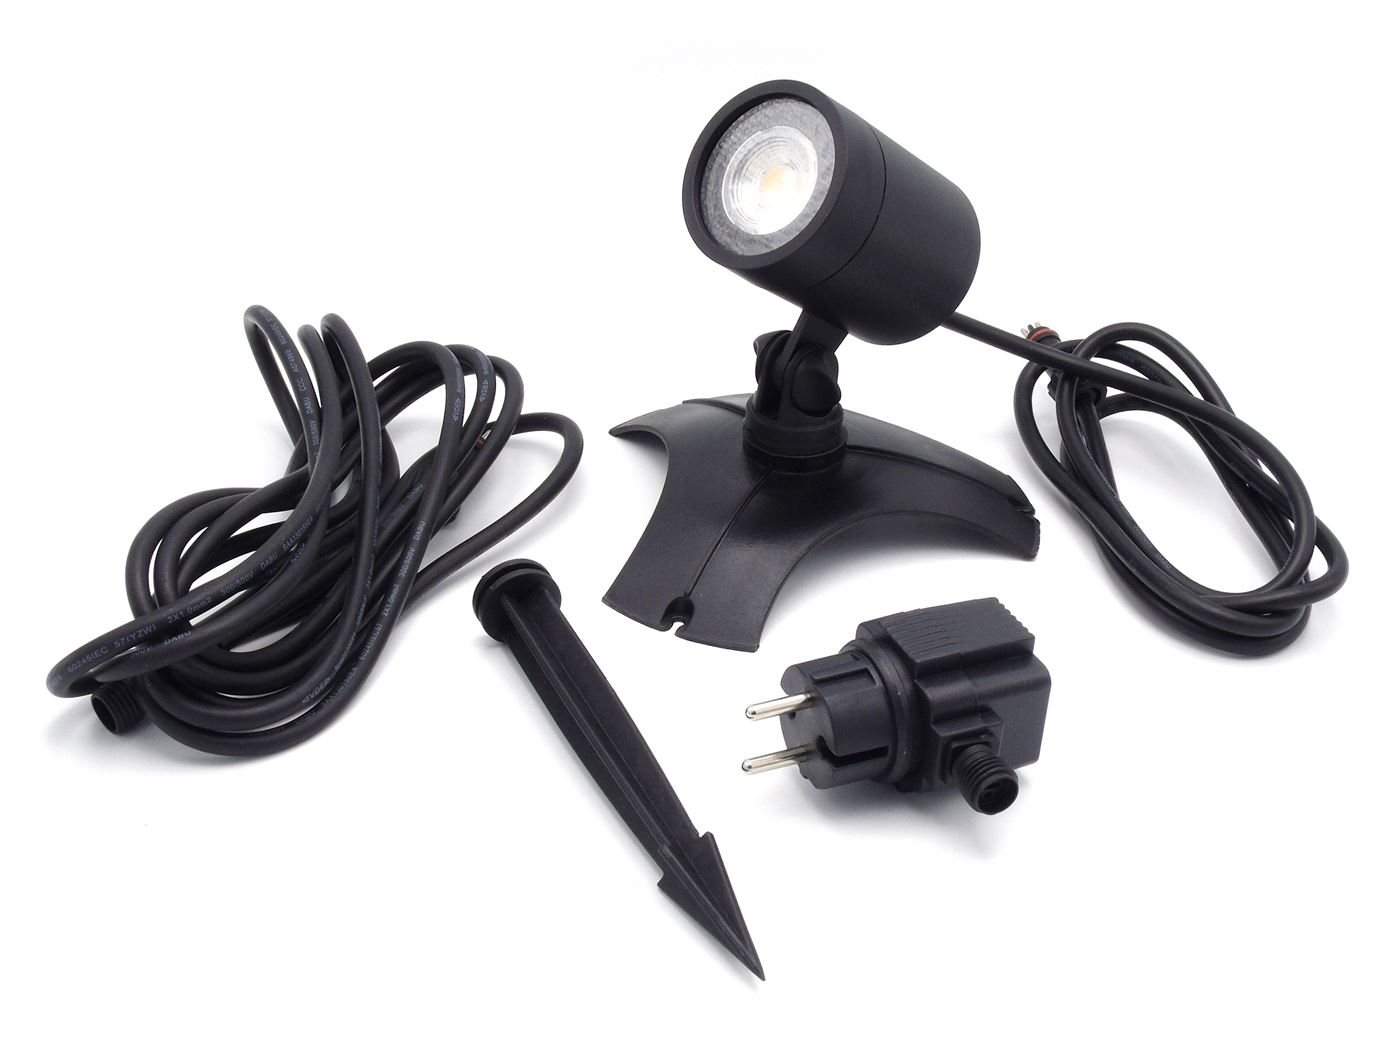 ubbink aquaspotlight